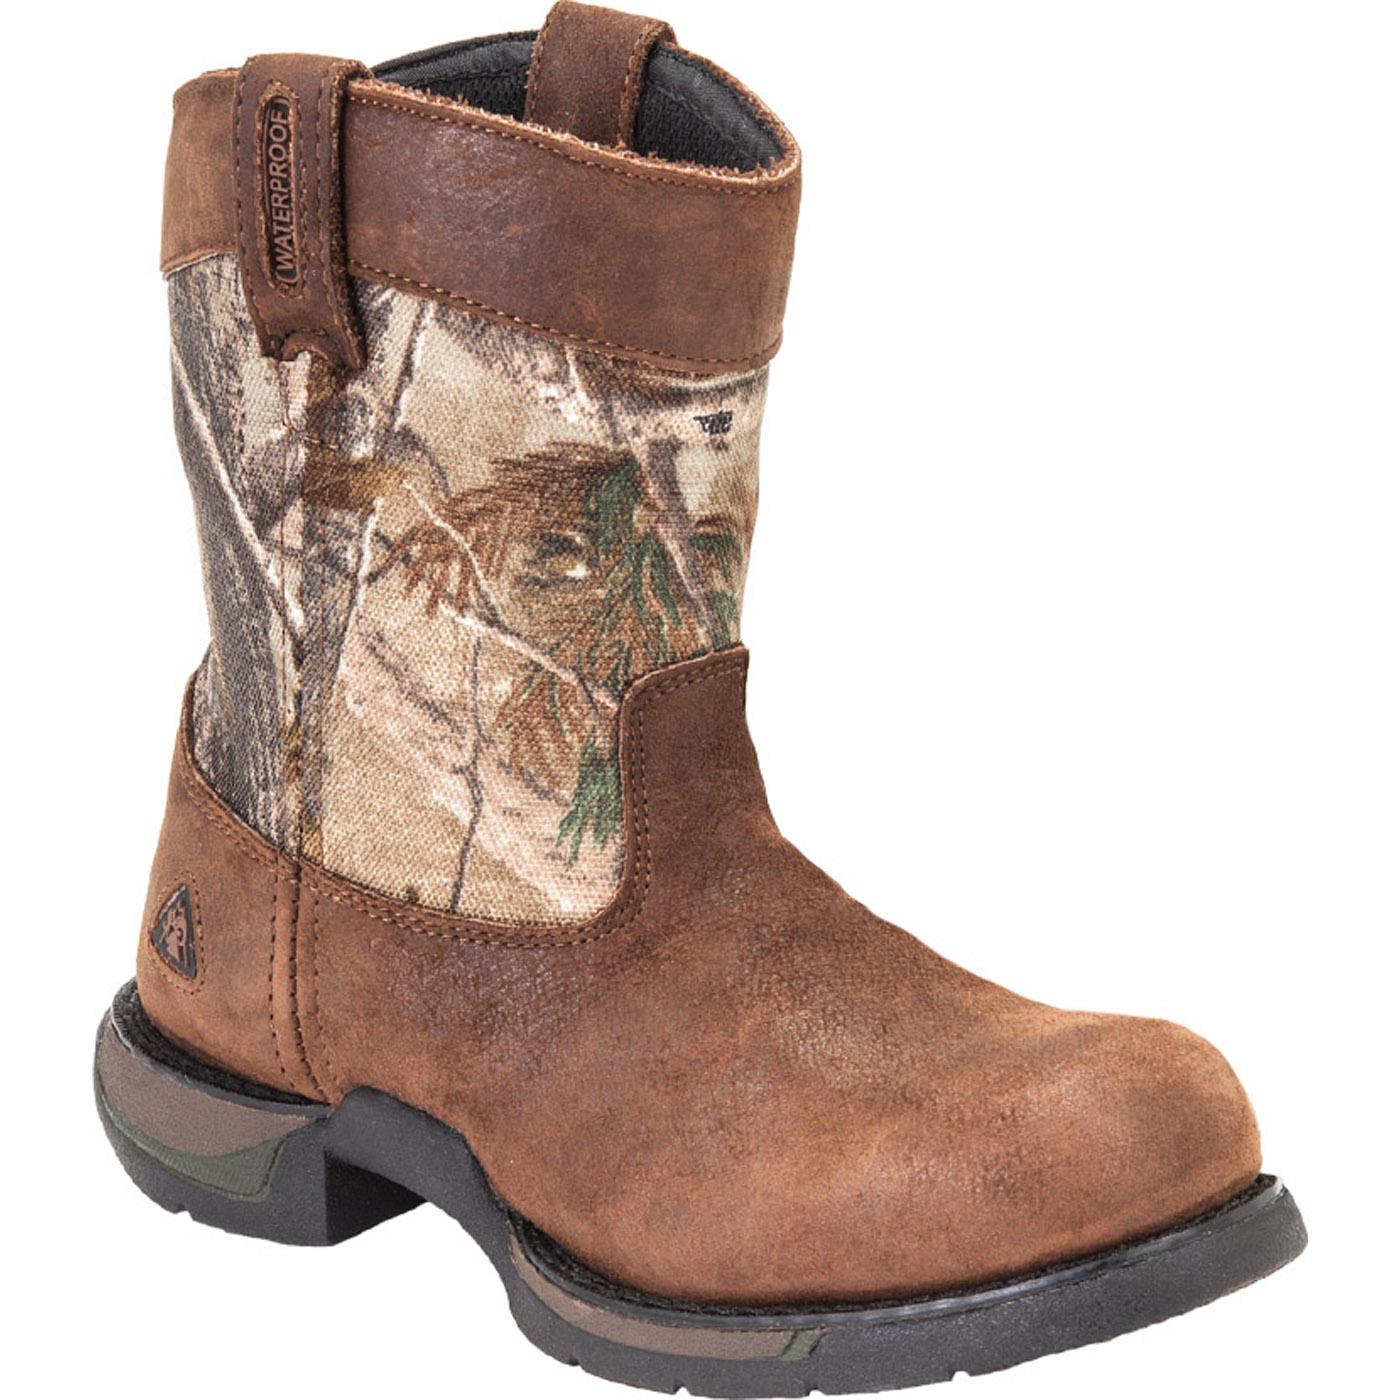 Kid's Footwear: Rocky Long Range Waterproof Leather Boots - Style ...